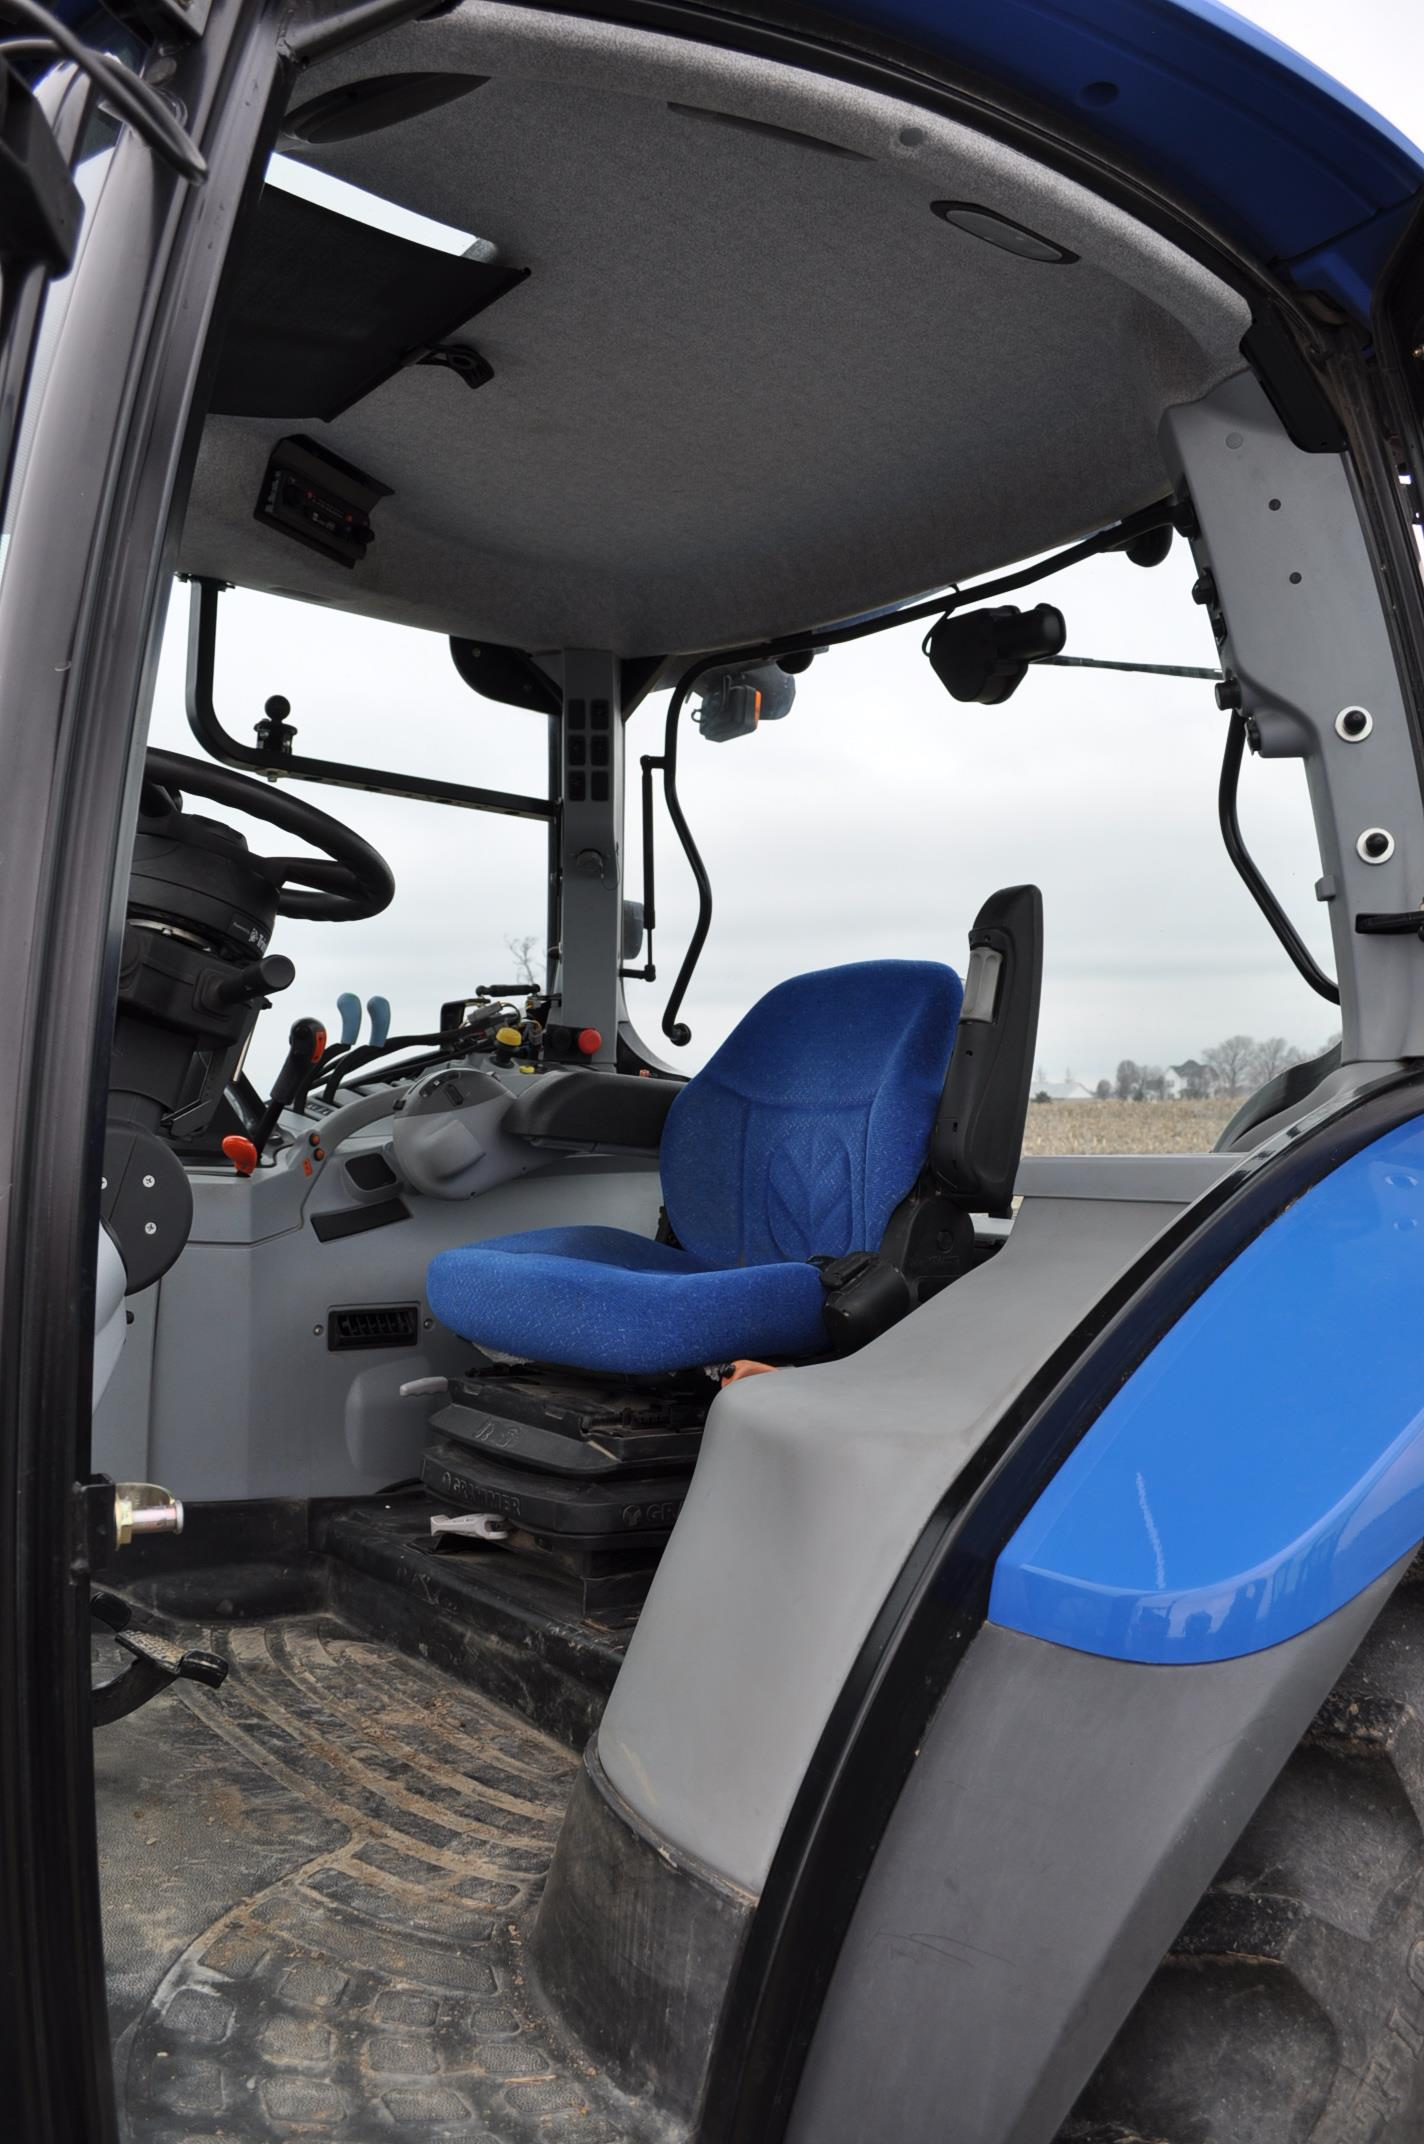 New Holland T6030 tractor, CHA, 16.9 R 38 tires, 11.00-16 front, 6 front wts, 3 hyd remotes, 3 pt, - Image 13 of 21